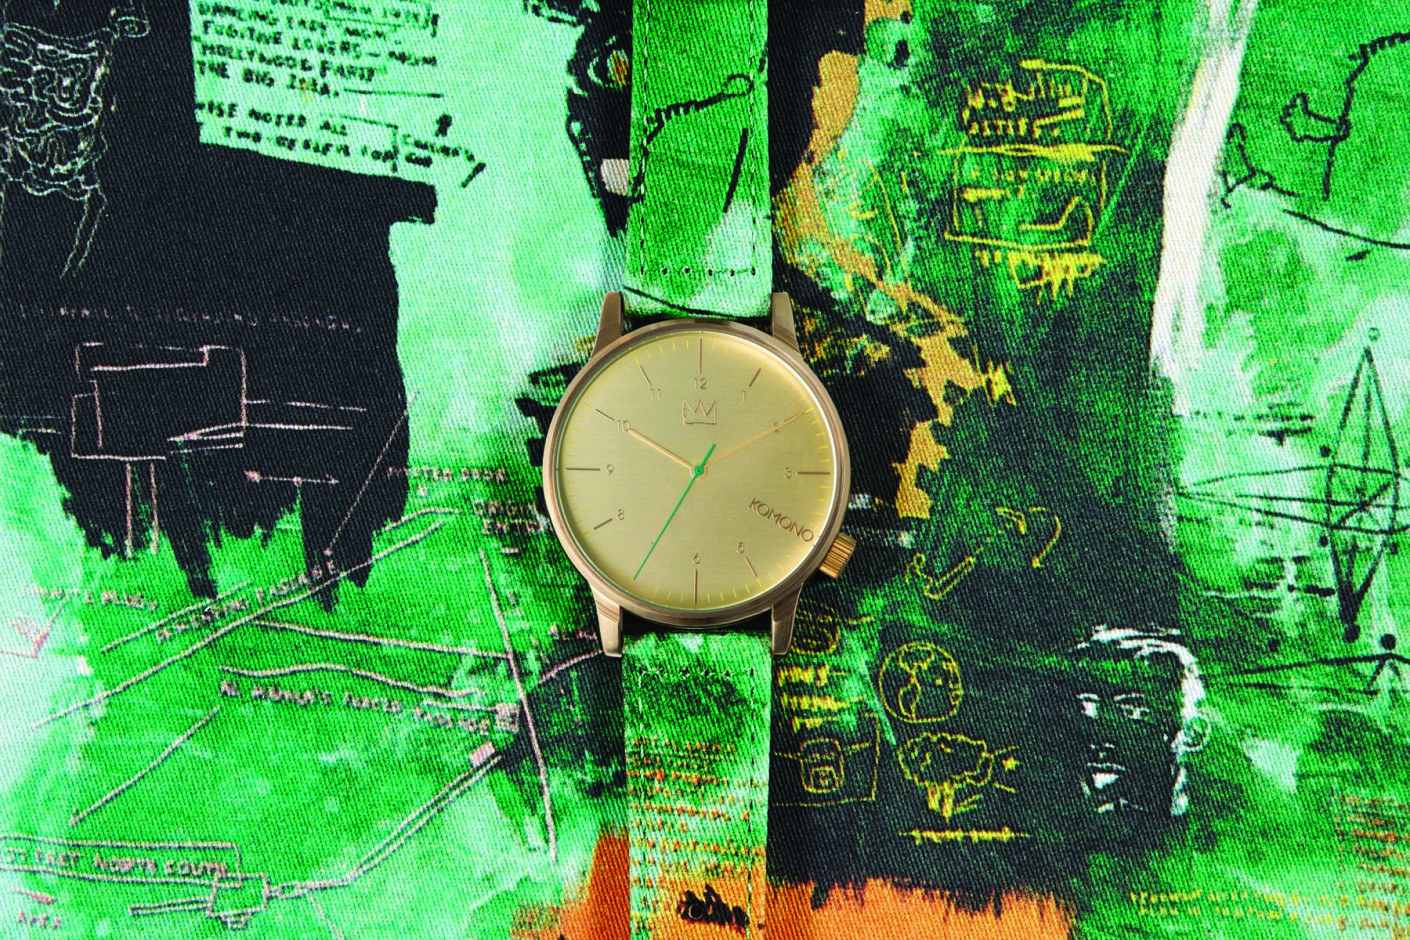 Komono x Jean-Michel Basquiat Watch Collection